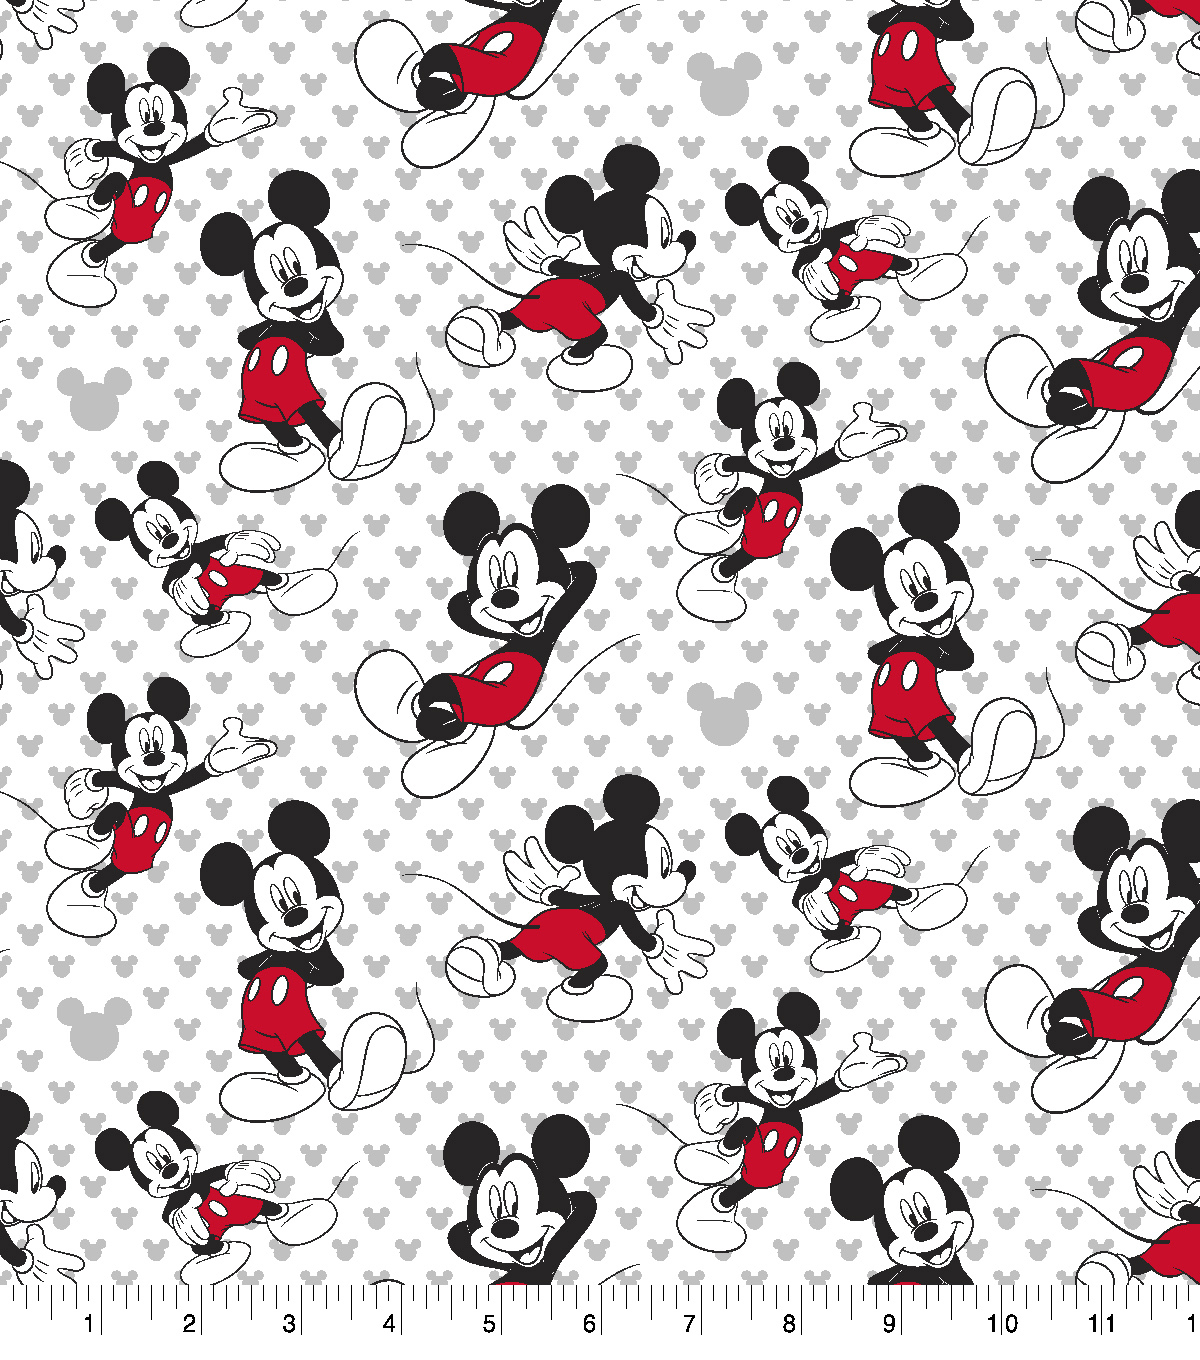 Disney Mickey Mouse Cotton Fabric -Totally Mickey Toss